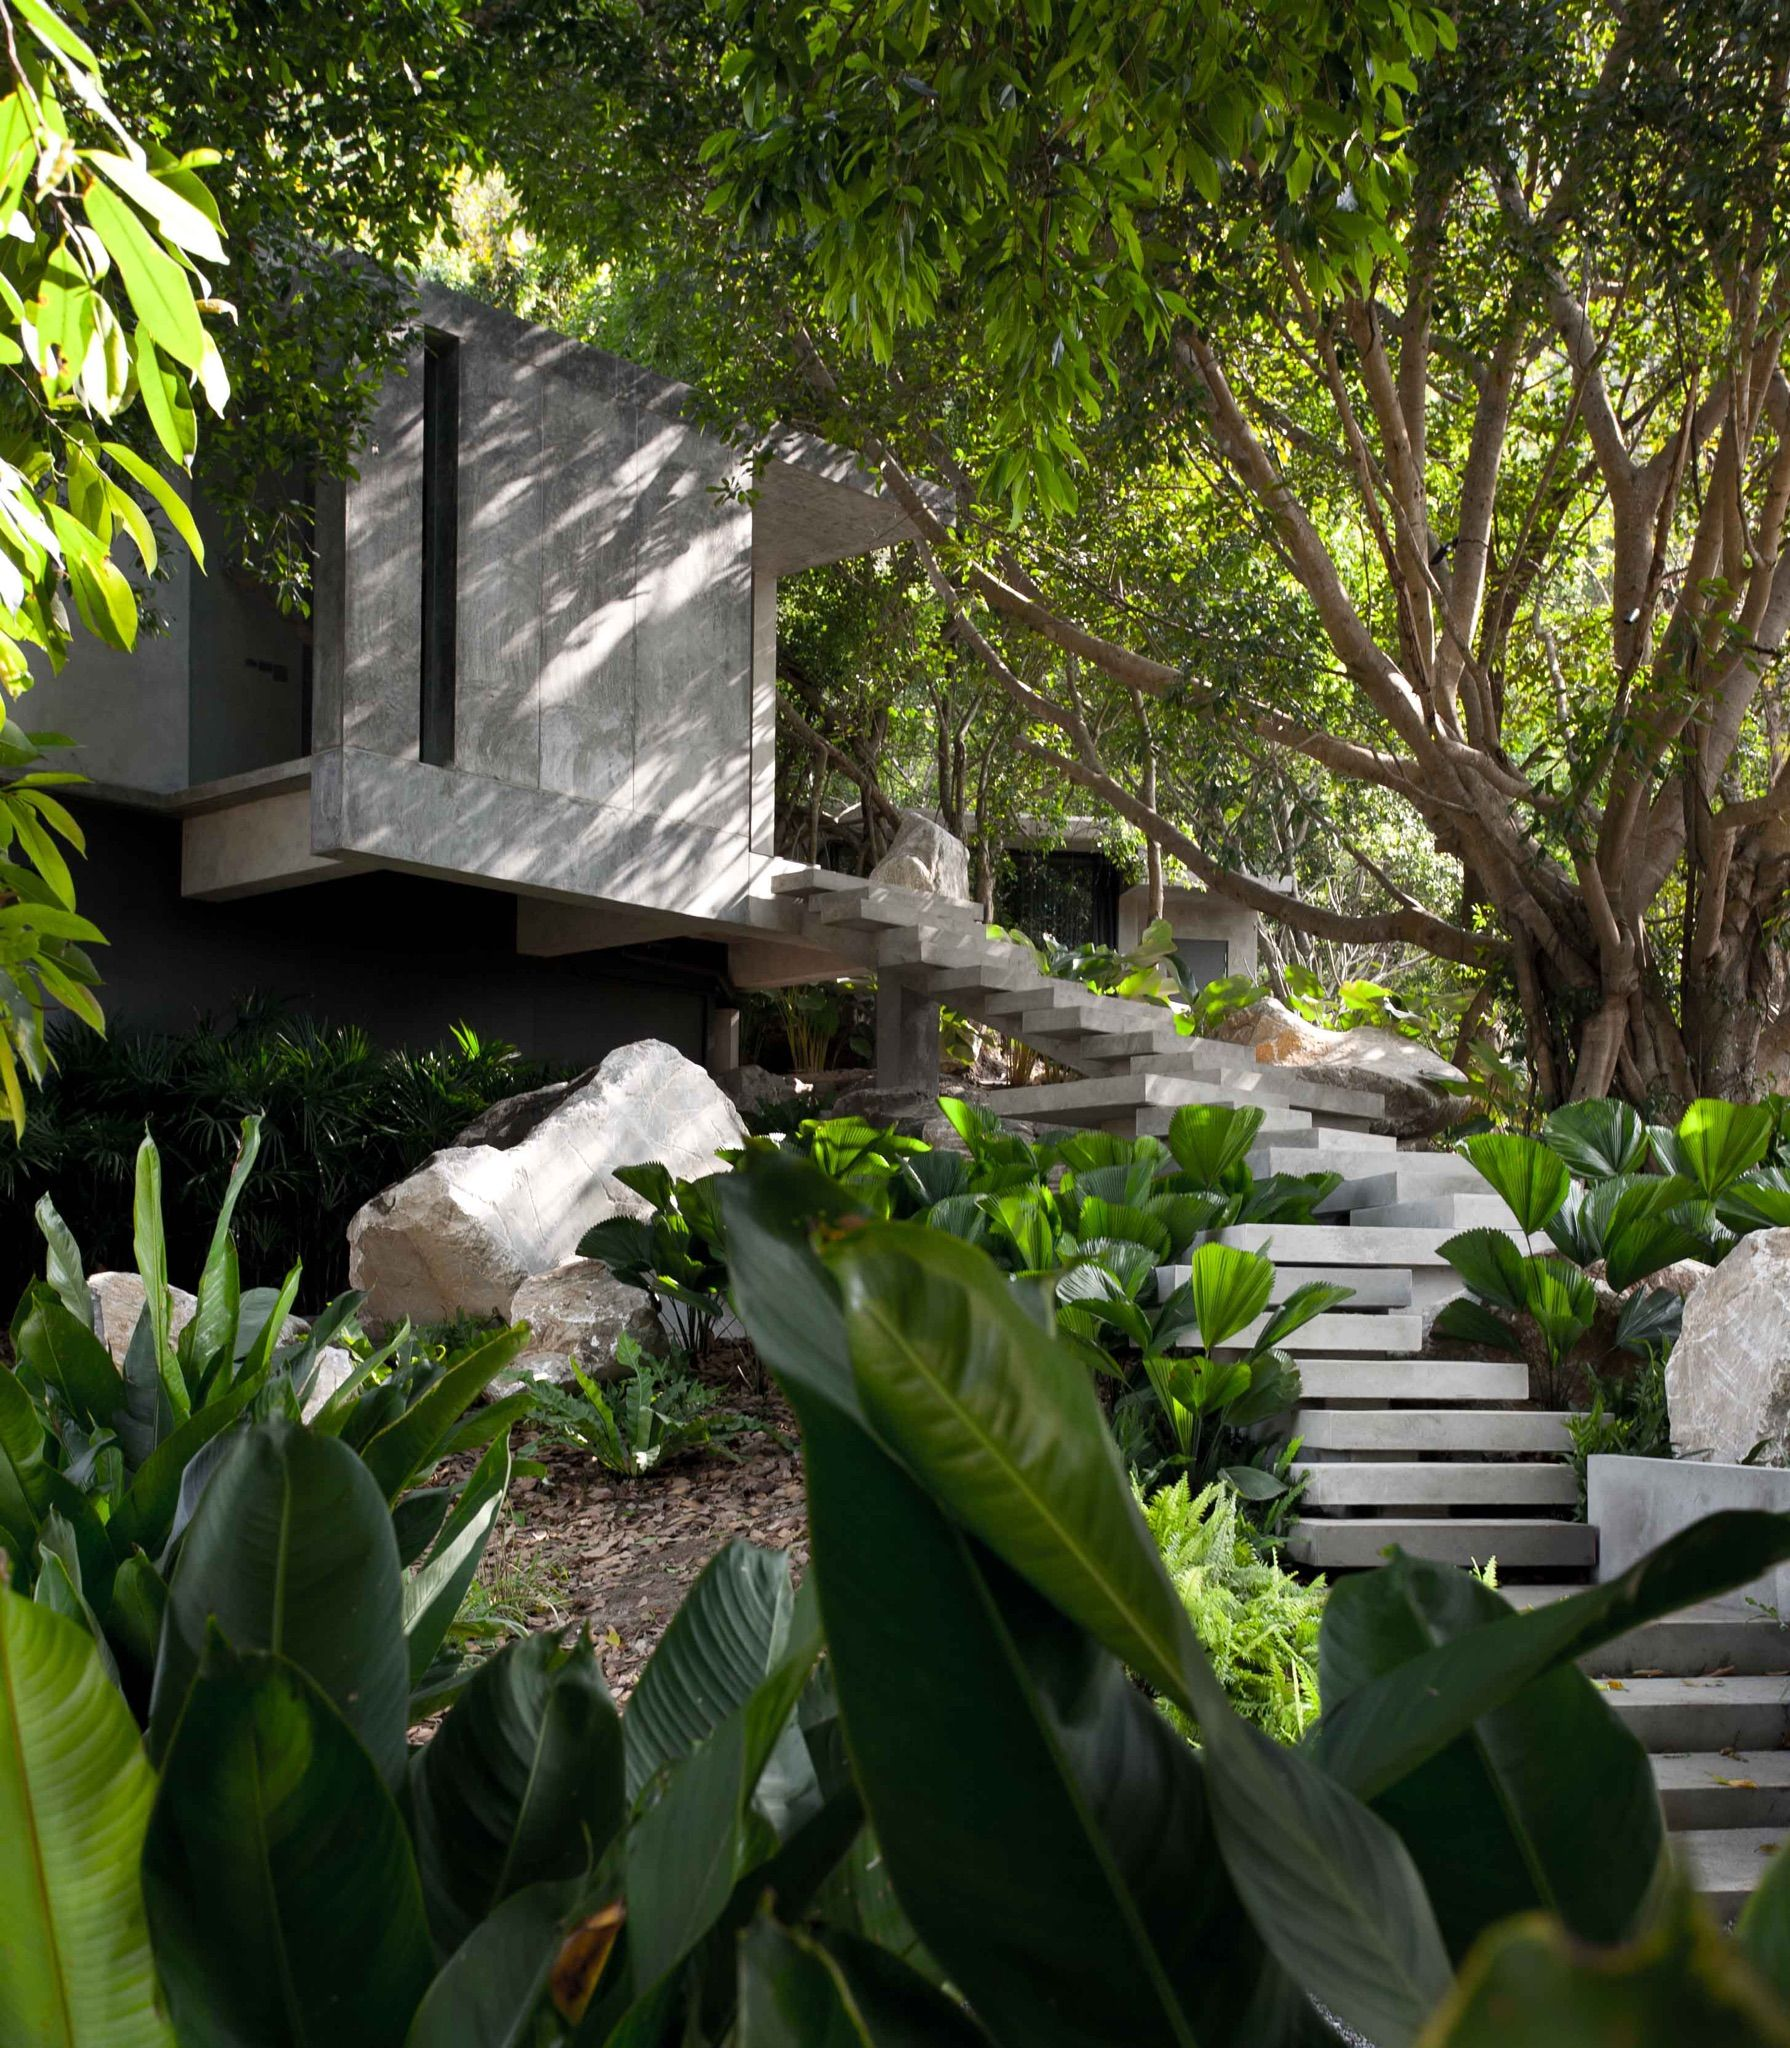 The Creek Hill Top House Khaoyai Thailand Architecture And Landscape Design By Opnbx Openbox Architects